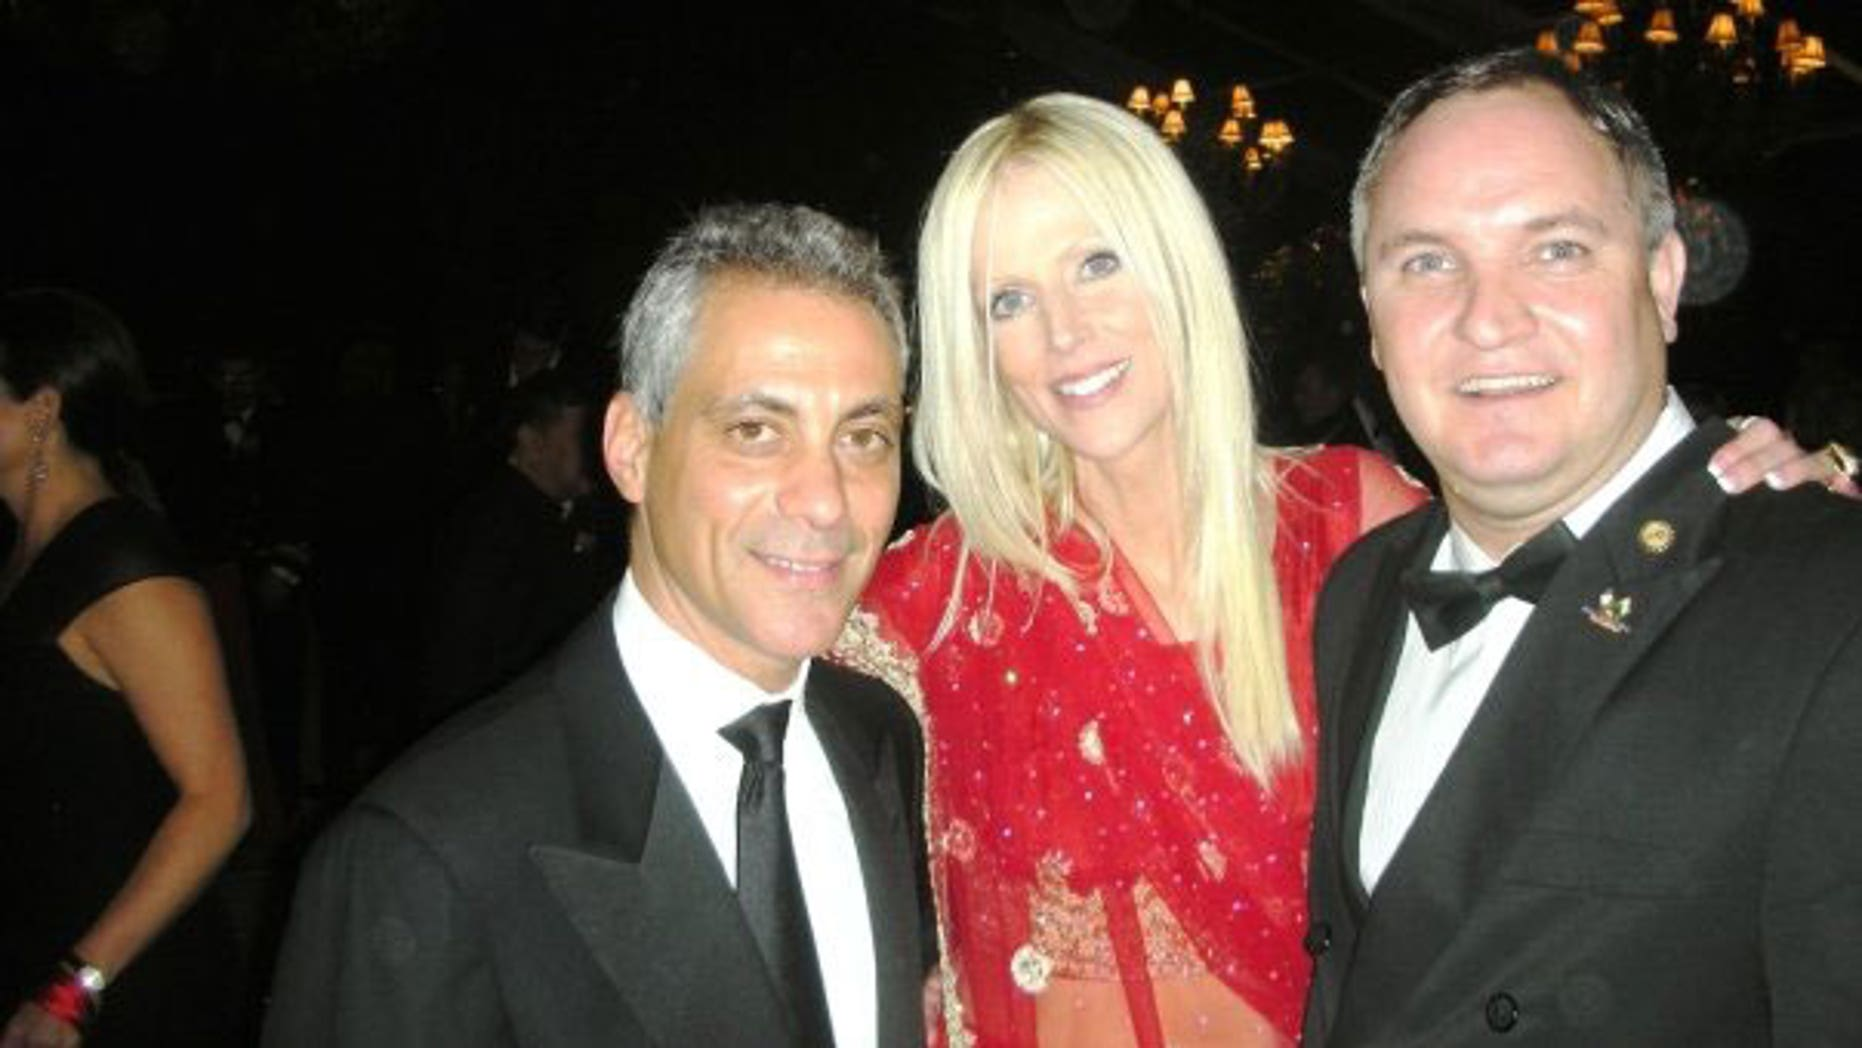 The Salahis photographed with White House chief of staff Rahm Emanuel at last week's state dinner.